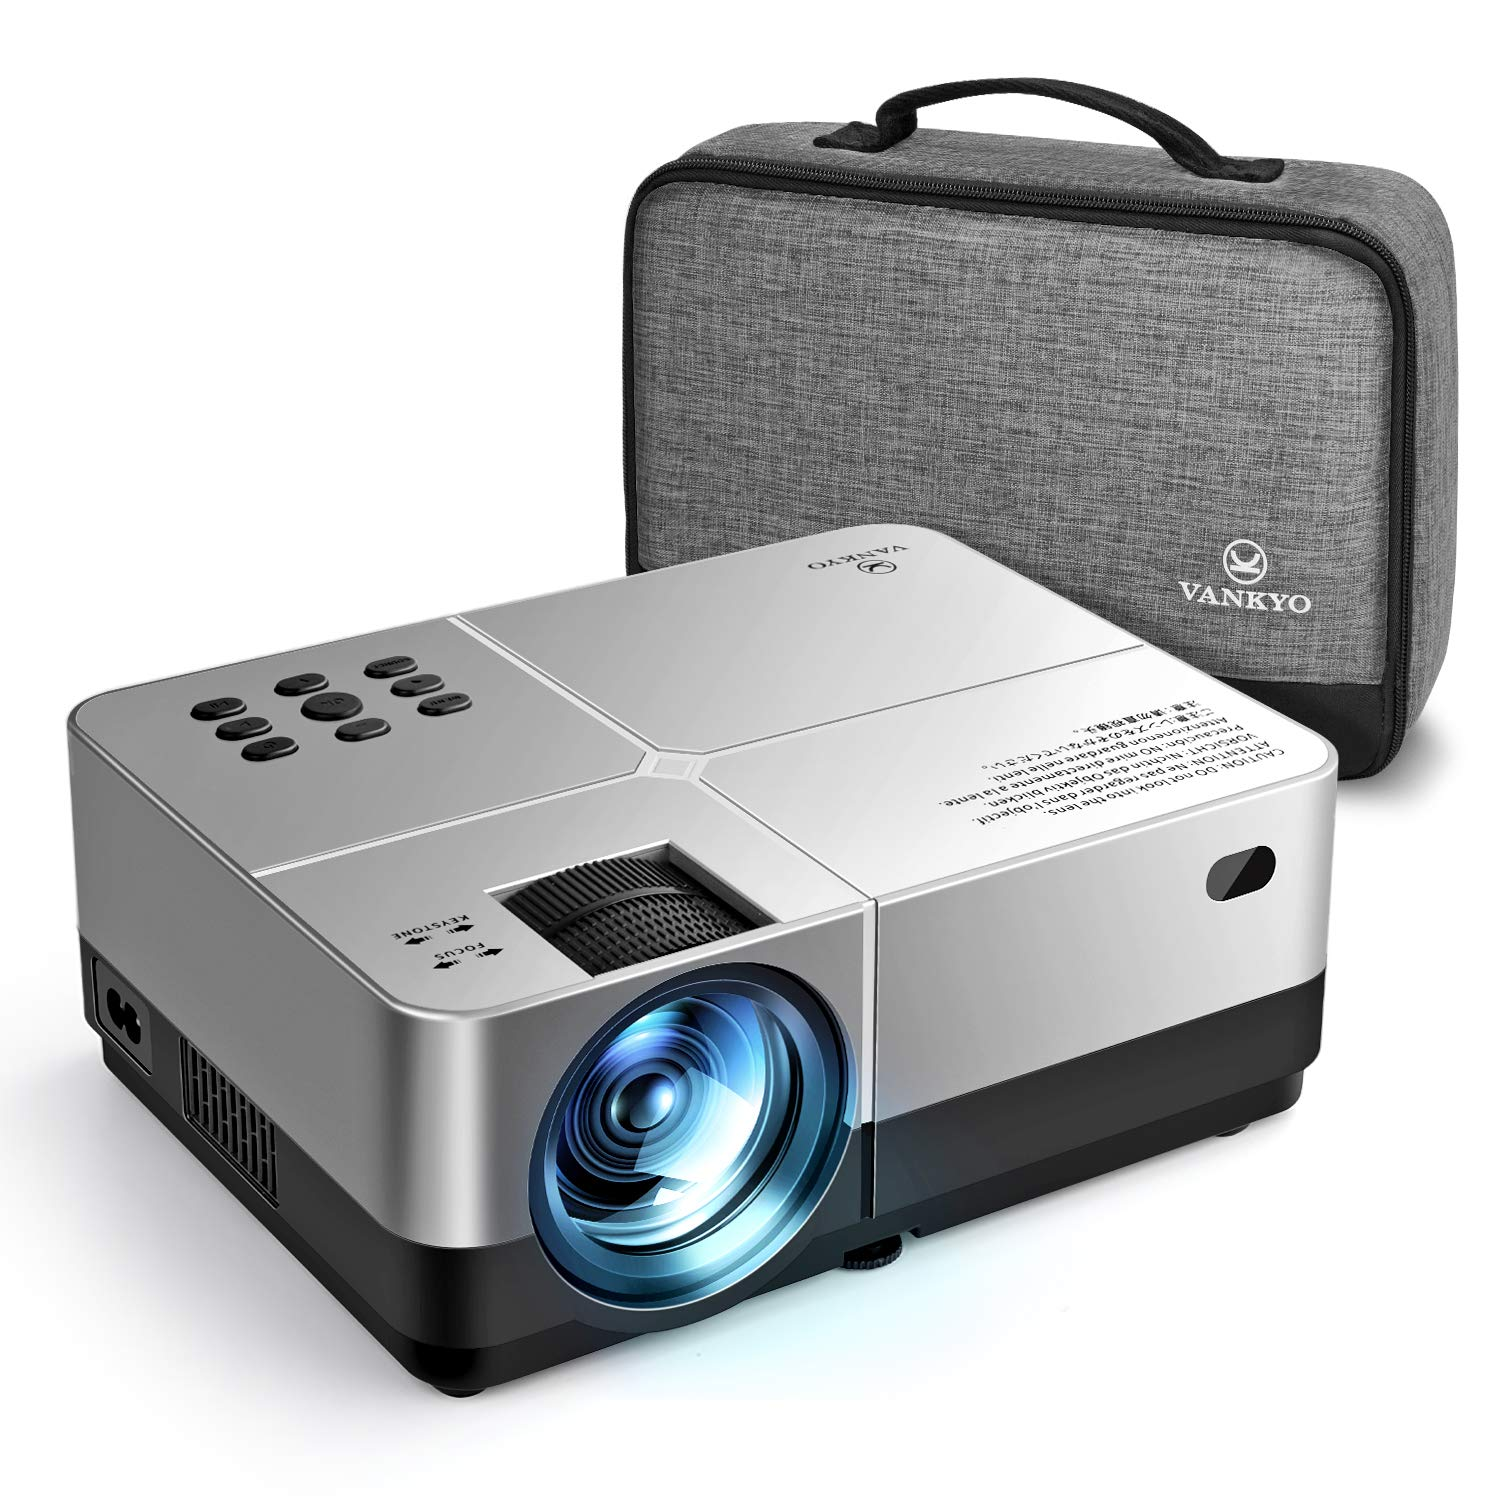 VANKYO Leisure 420 Mini Projector, 3500 Lux Portable Home Movie Cinema, 1080P Supported, 200'' Projection Size, Compatible w/ PS4, Xbox, HDMI for Gaming, Sports